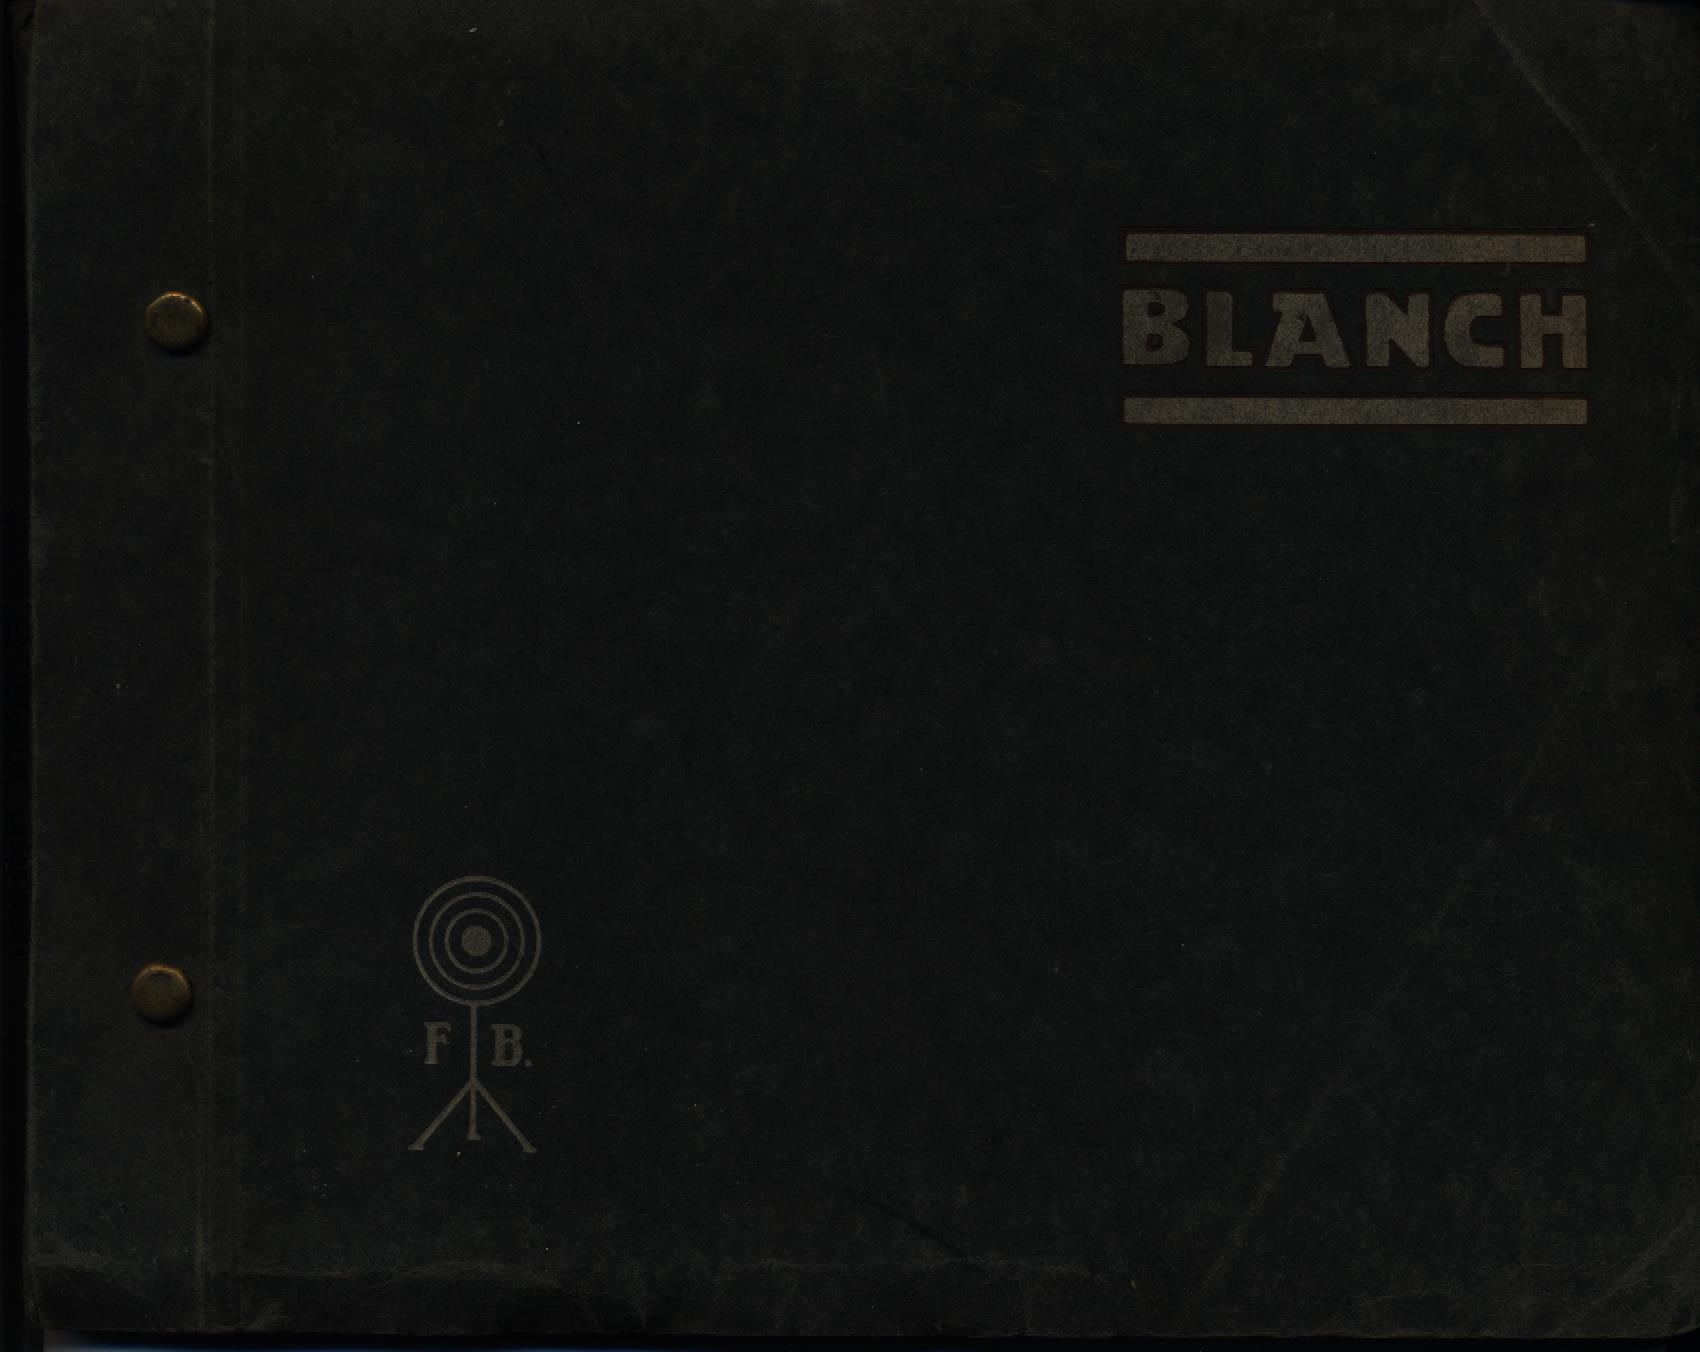 """BLANCH"". Catálogo general"